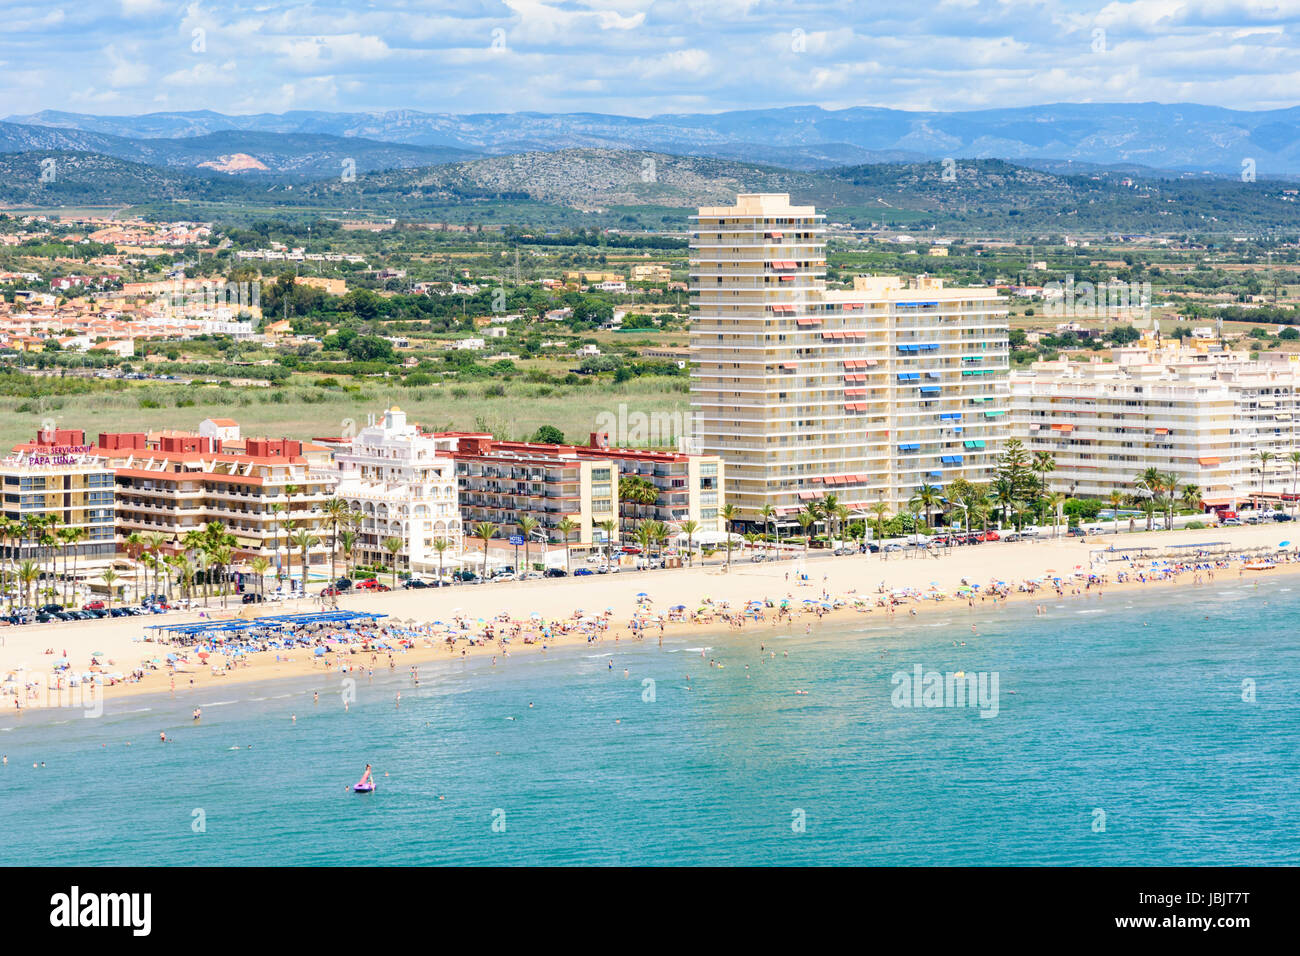 Birds-eye view of Playa Norte and waterfront hotels along the promenade of Peniscola Town, Costa del Azahar, Spain - Stock Image